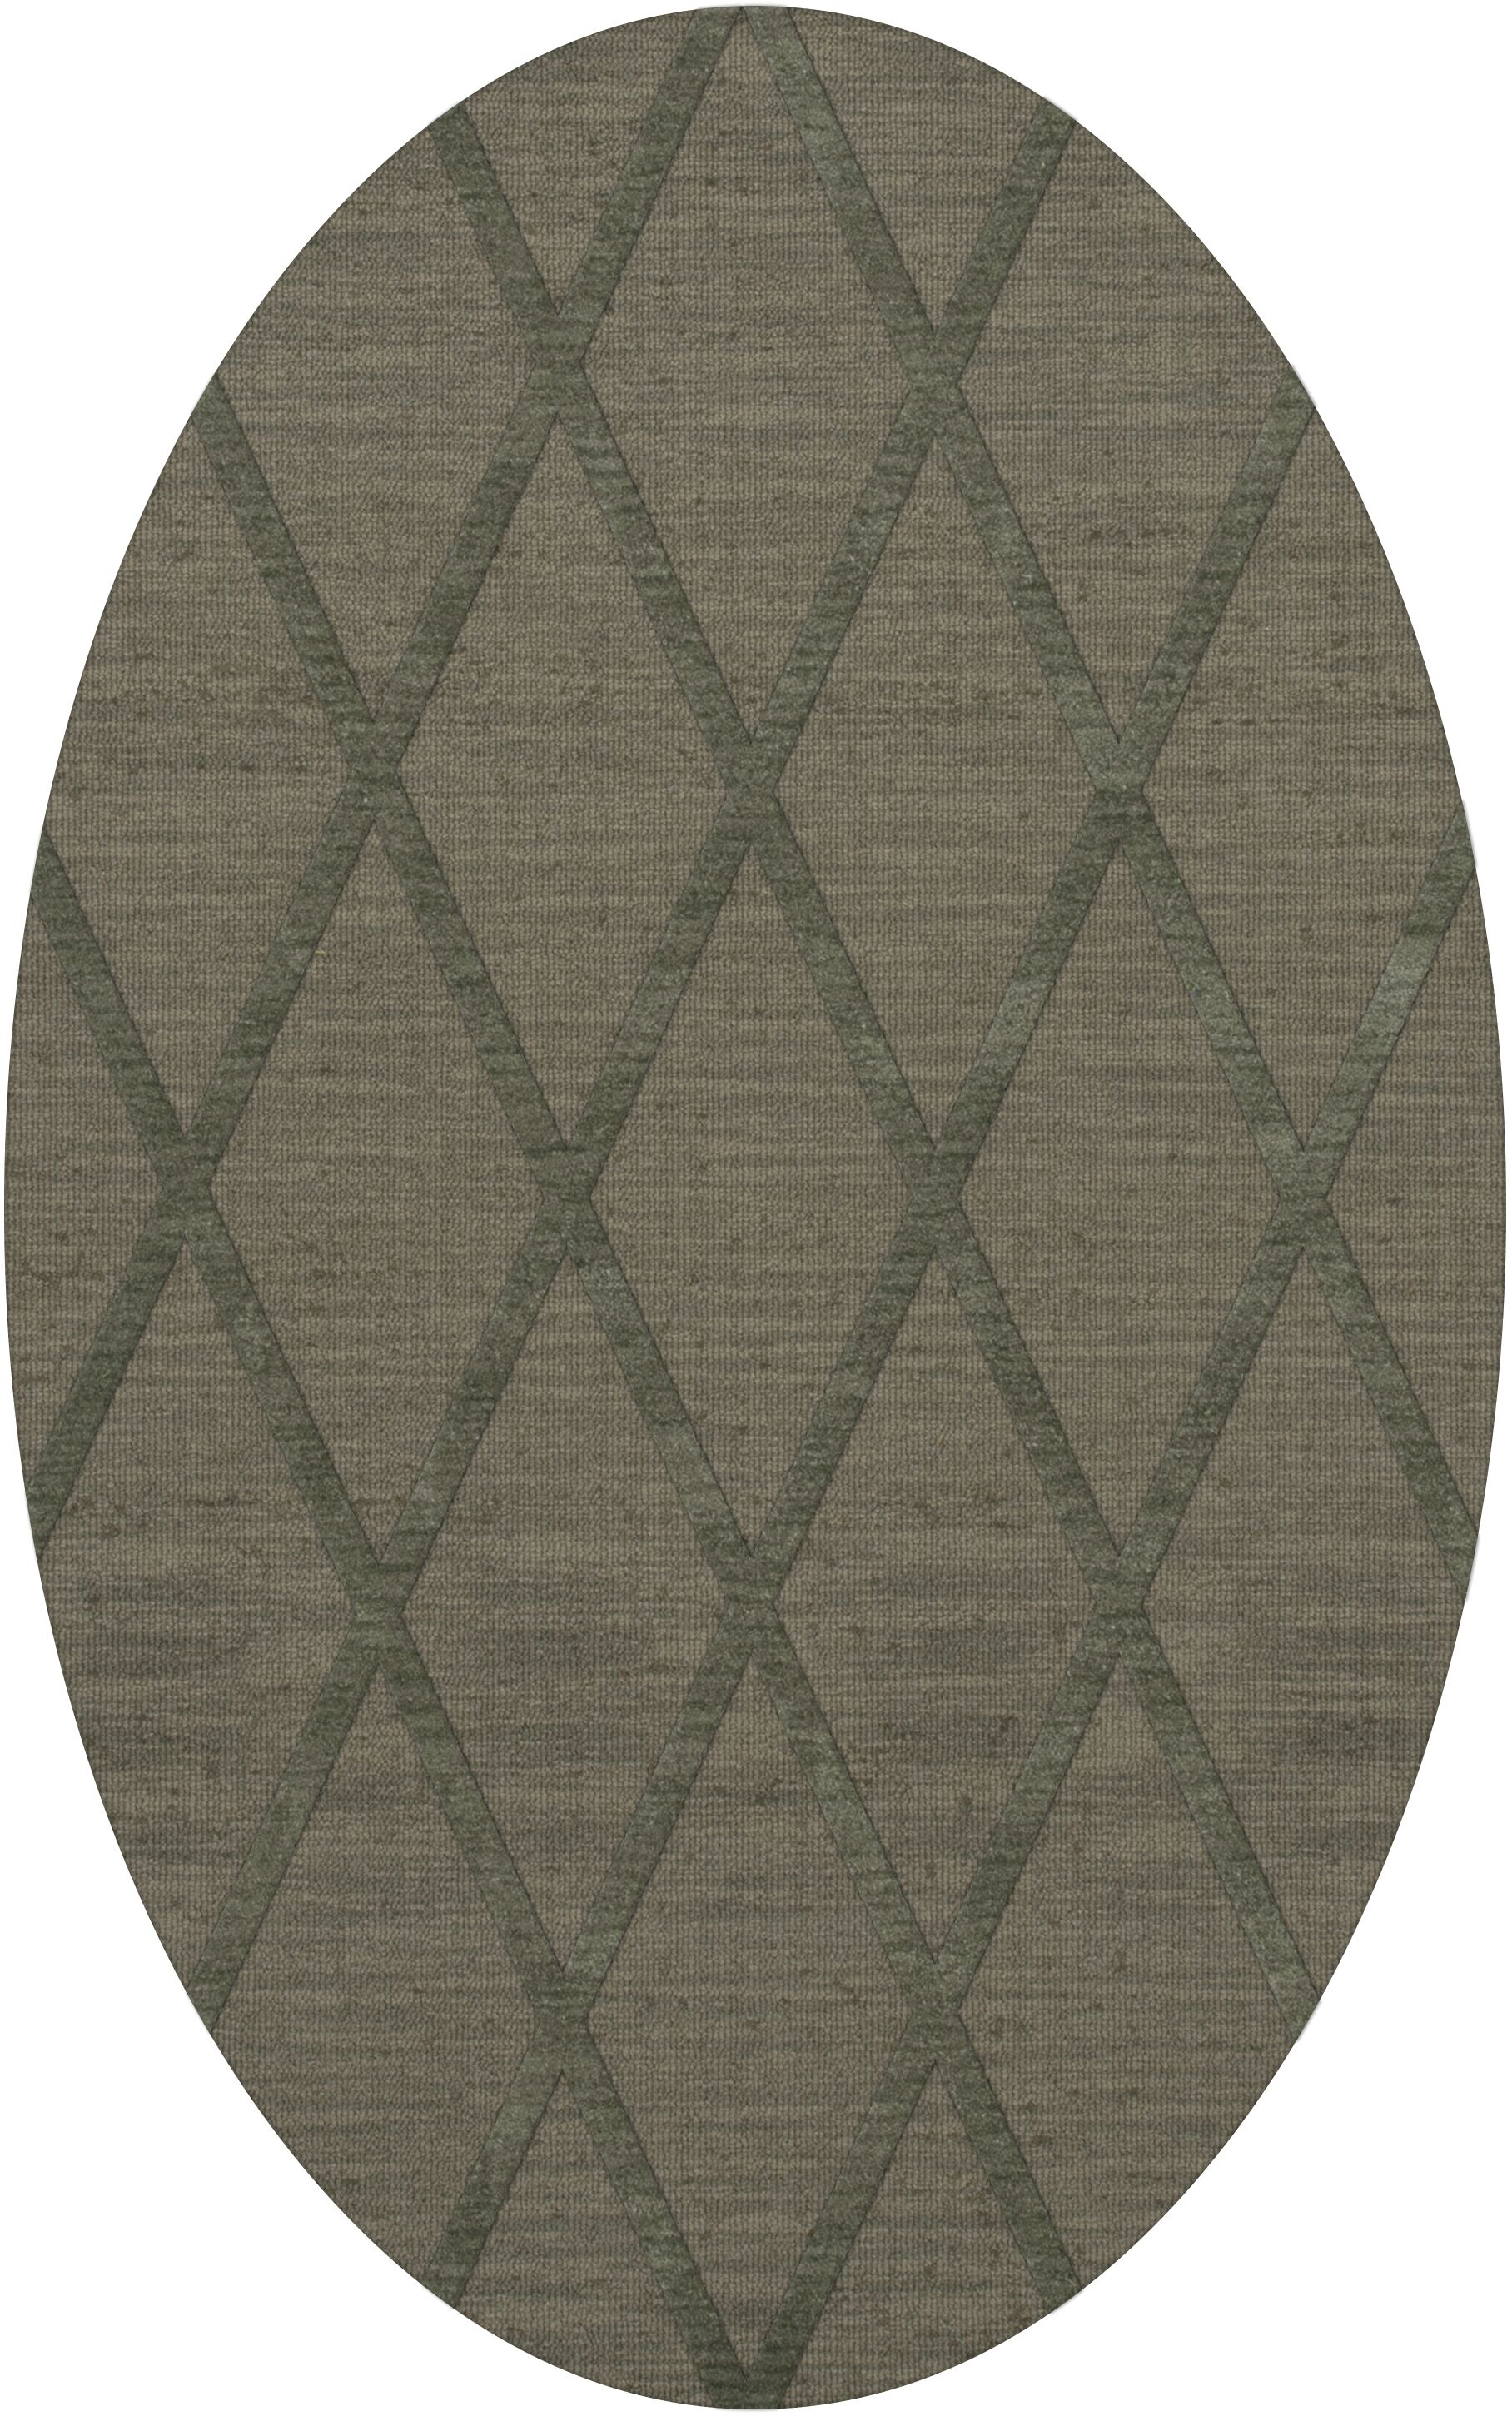 Dover Tufted Wool Aloe Area Rug Rug Size: Oval 5' x 8'